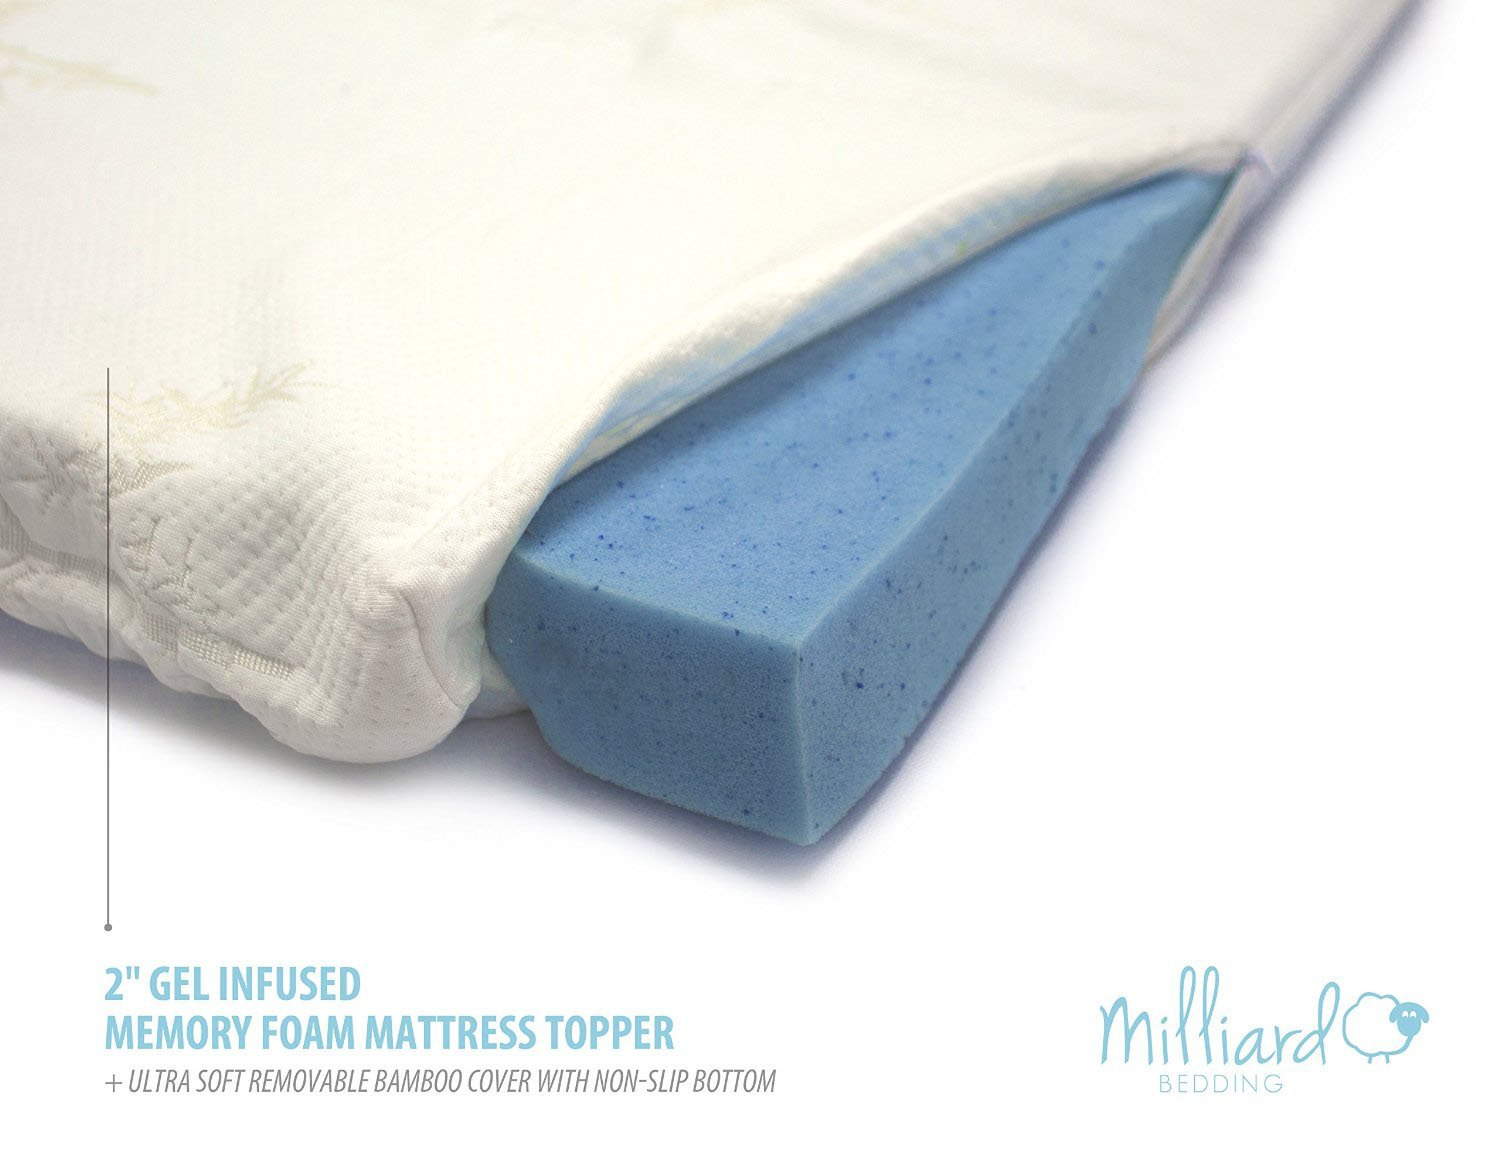 Milliard 2 Inch Gel Infused Memory Foam Mattress Topper Review